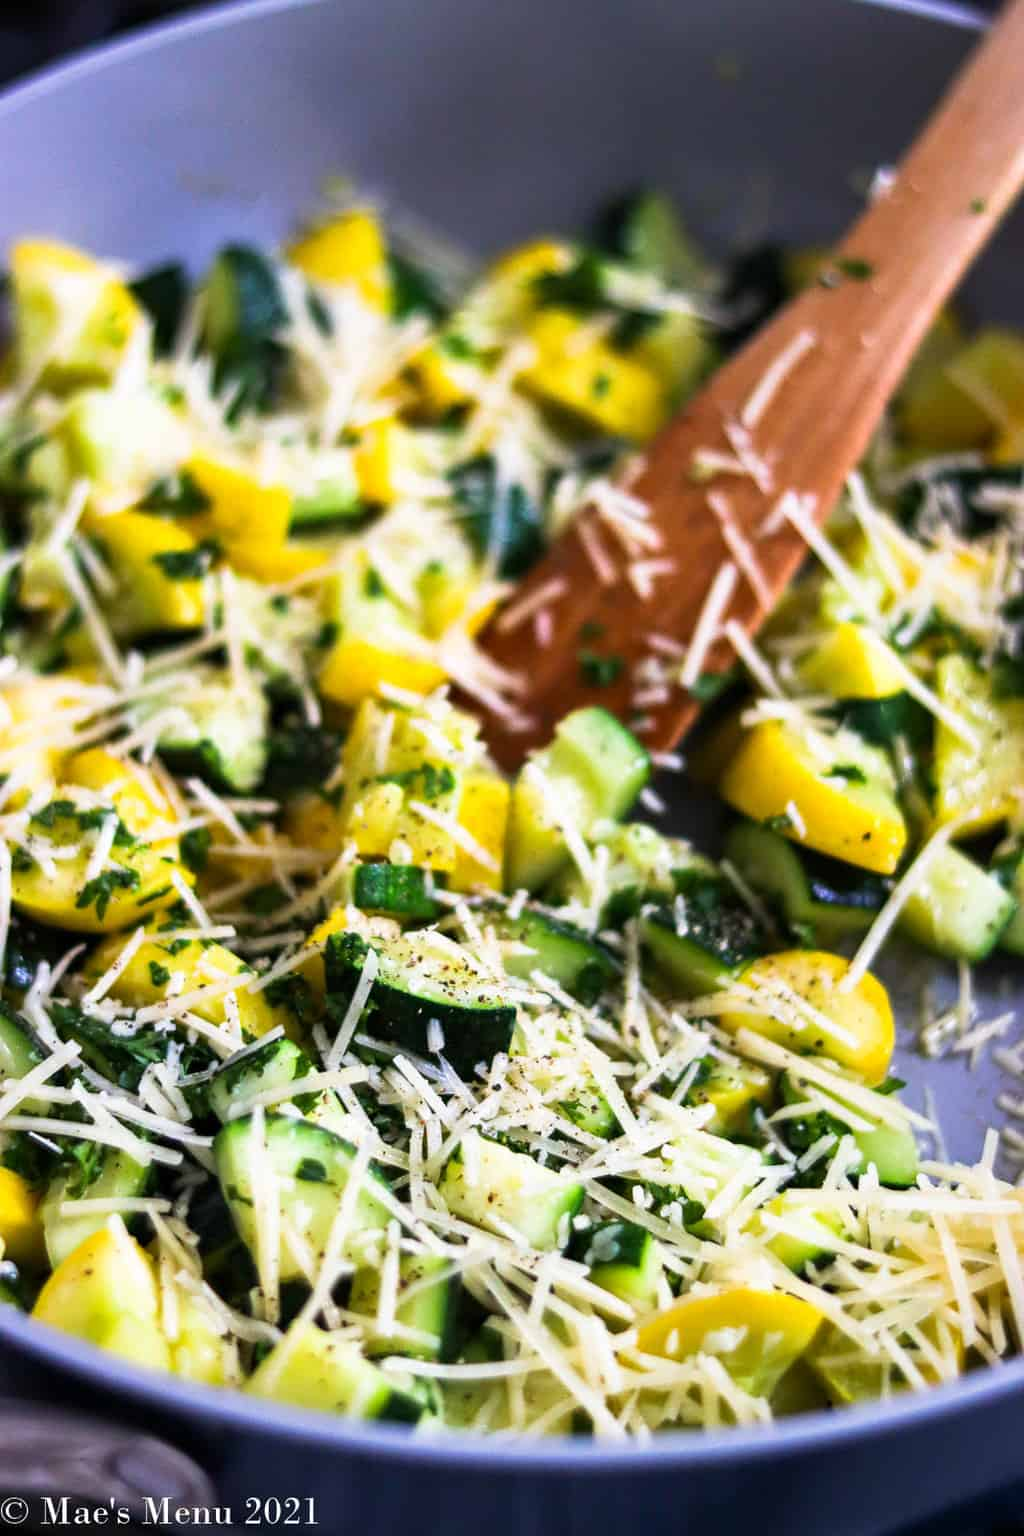 A side angle shot of a pan of sauteed yellow squash and zucchini with parmesan cheese and parsley